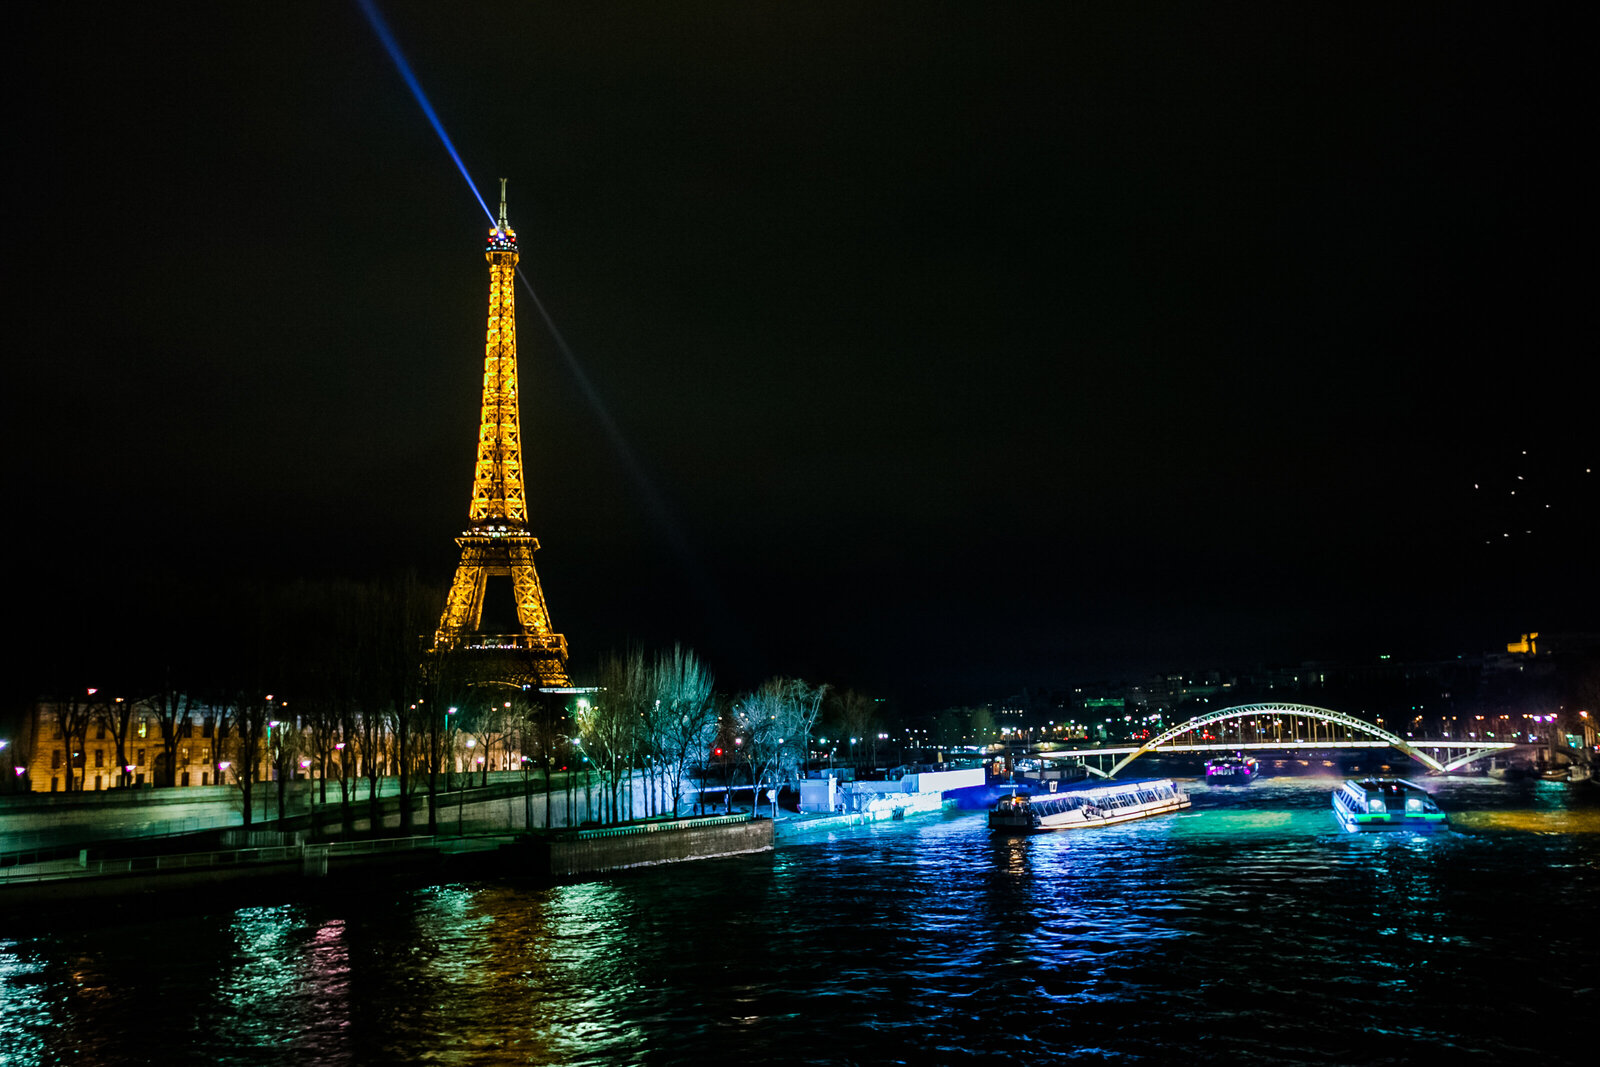 067-KBP-Paris-France-Eiffel-Tower-light